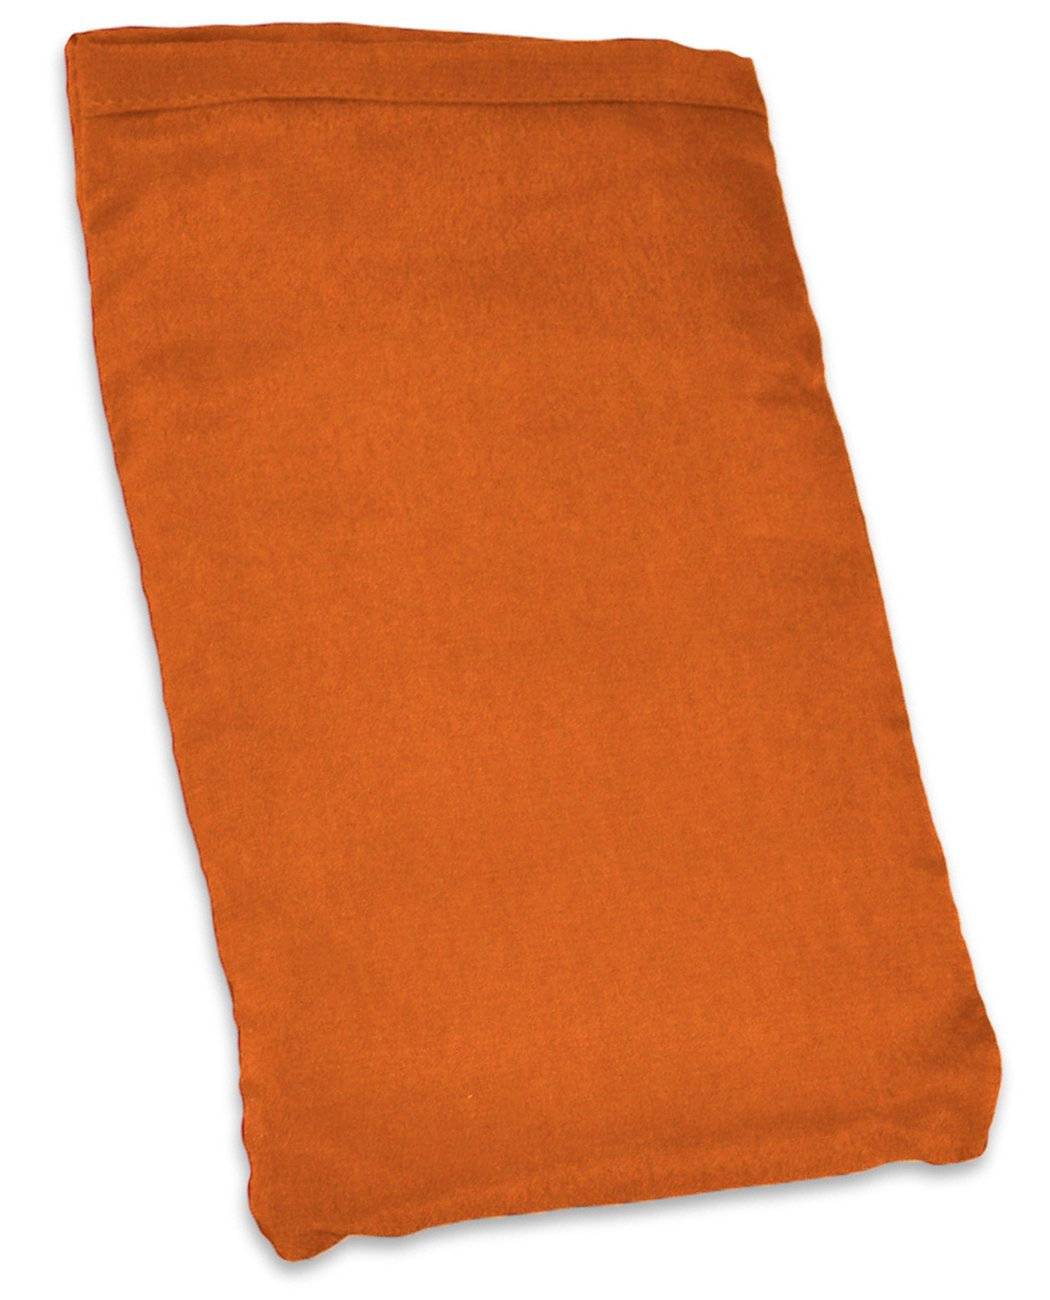 YogaAccessories Small Silk Eye Pillow (Unscented) - Orange